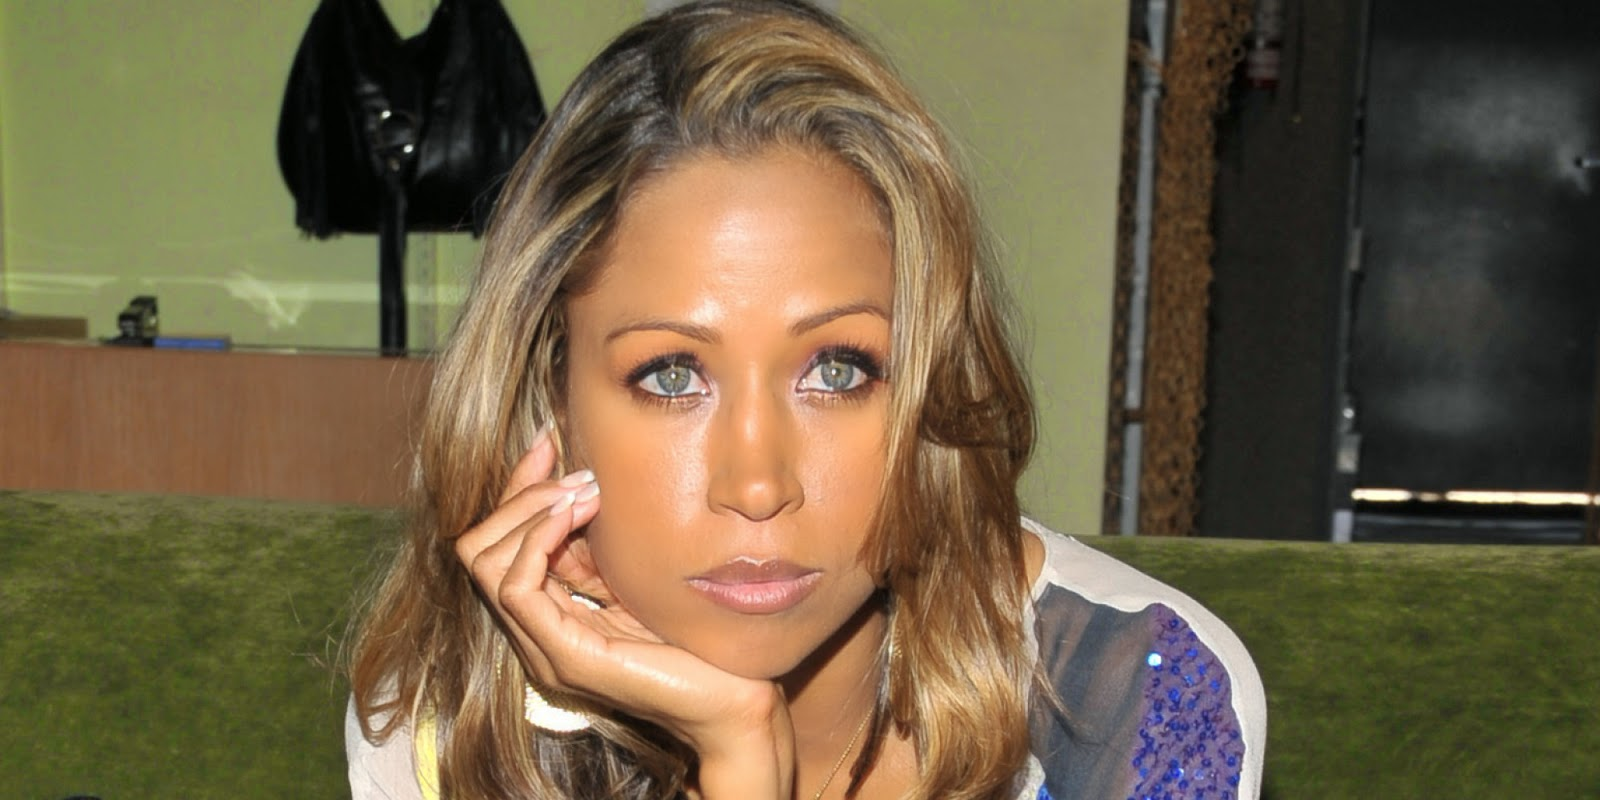 Ethnic background of celebrities - Jpg 1600x800 Stacey Dash Ethnic Background